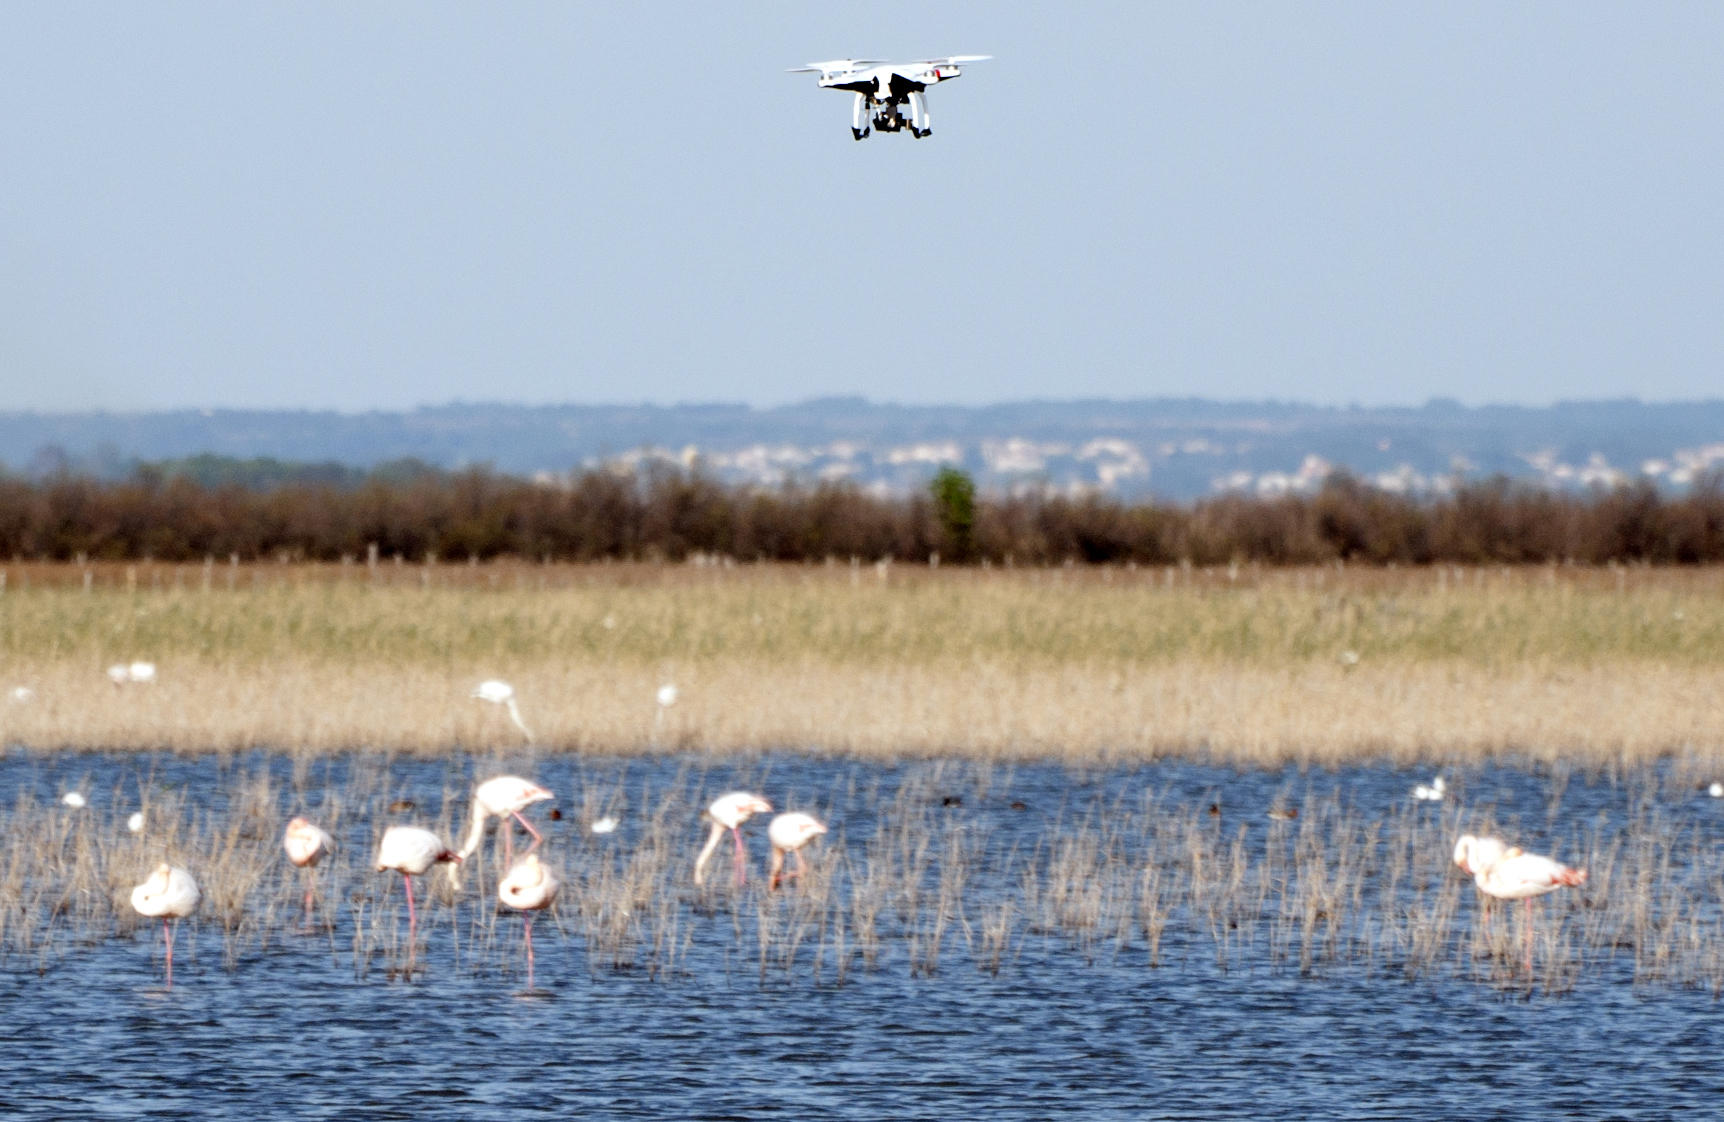 Un drone survole un groupe de flamands roses.